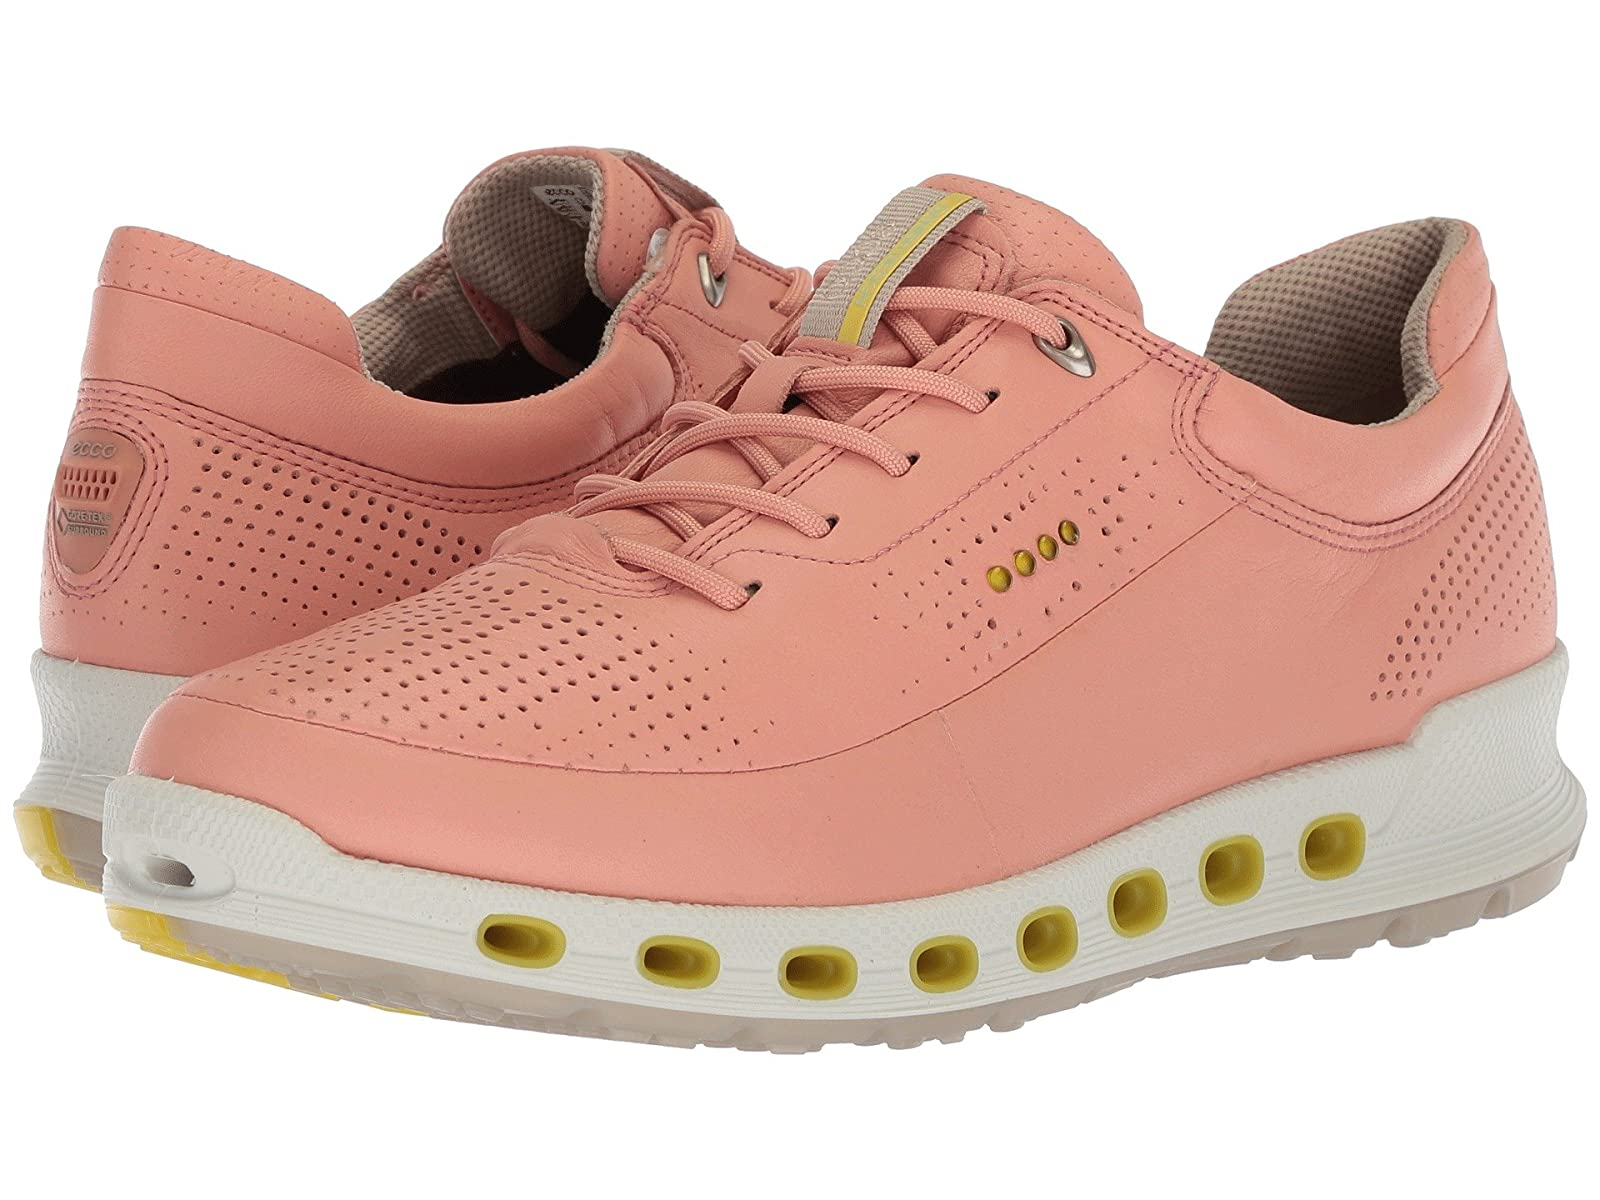 ECCO Sport Cool 2.0 Gore-Tex SneakerAtmospheric grades have affordable shoes